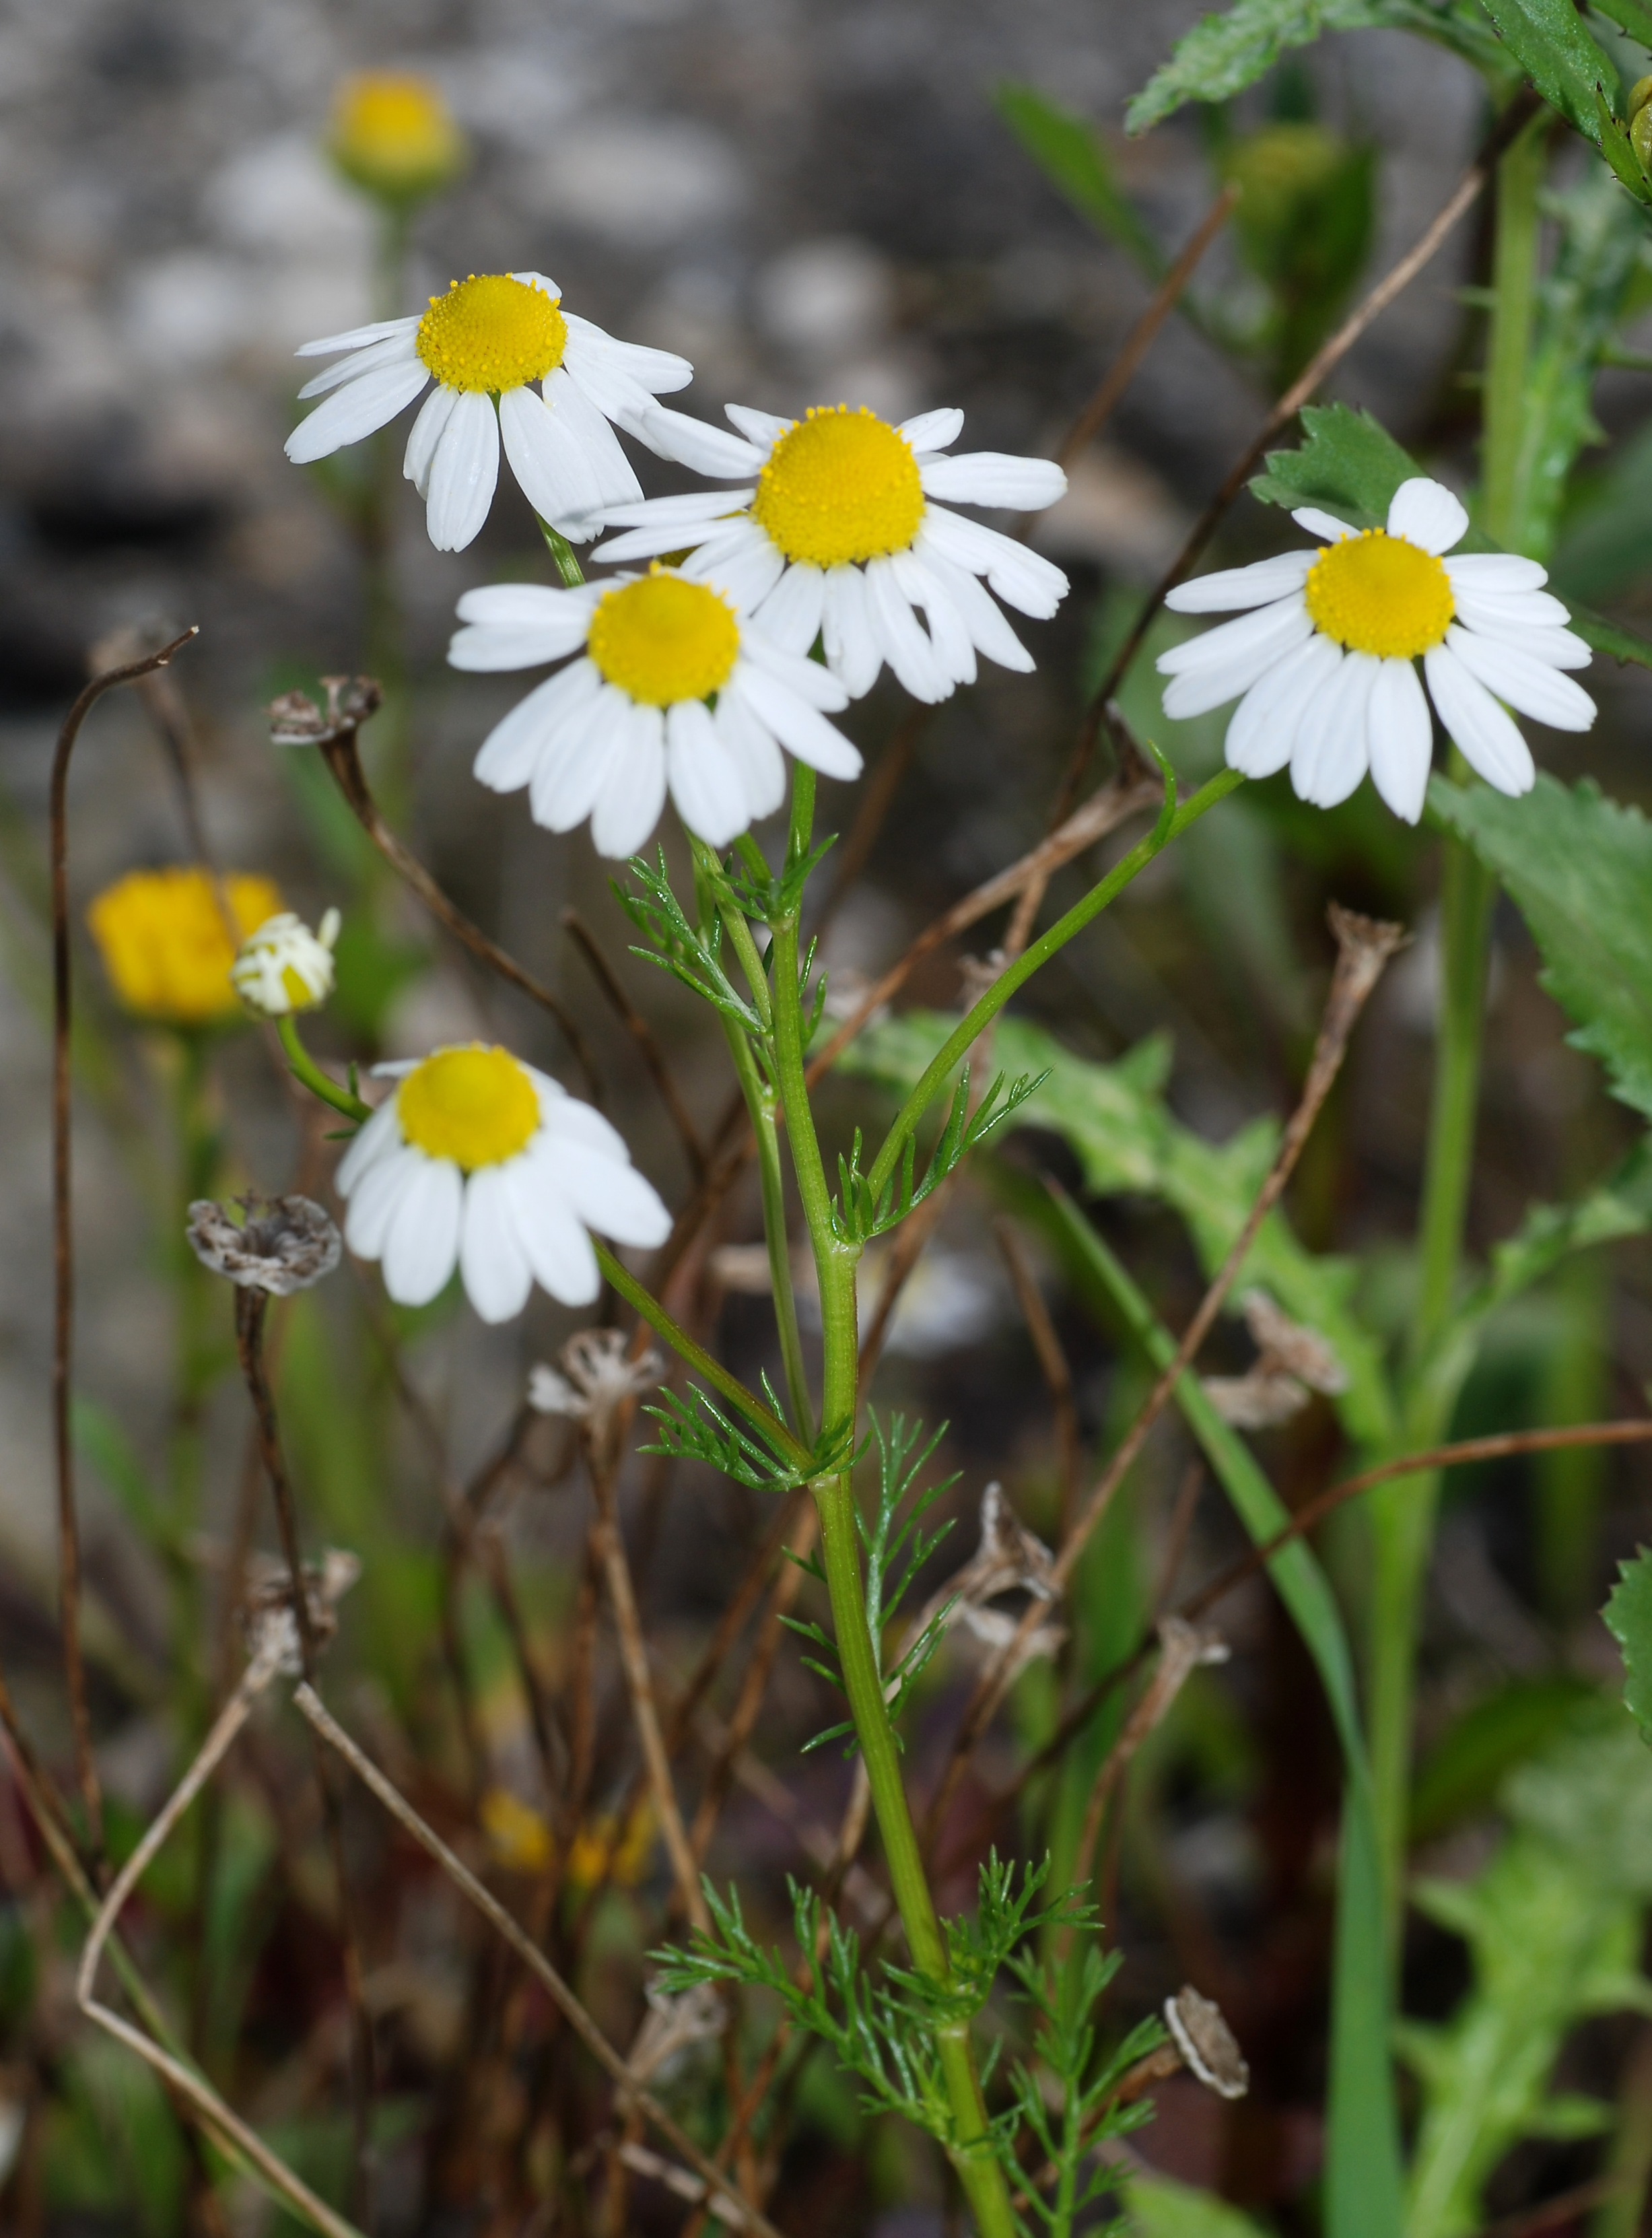 CHAMOMILE: A Trustworthy Herbal Muscle Relaxant